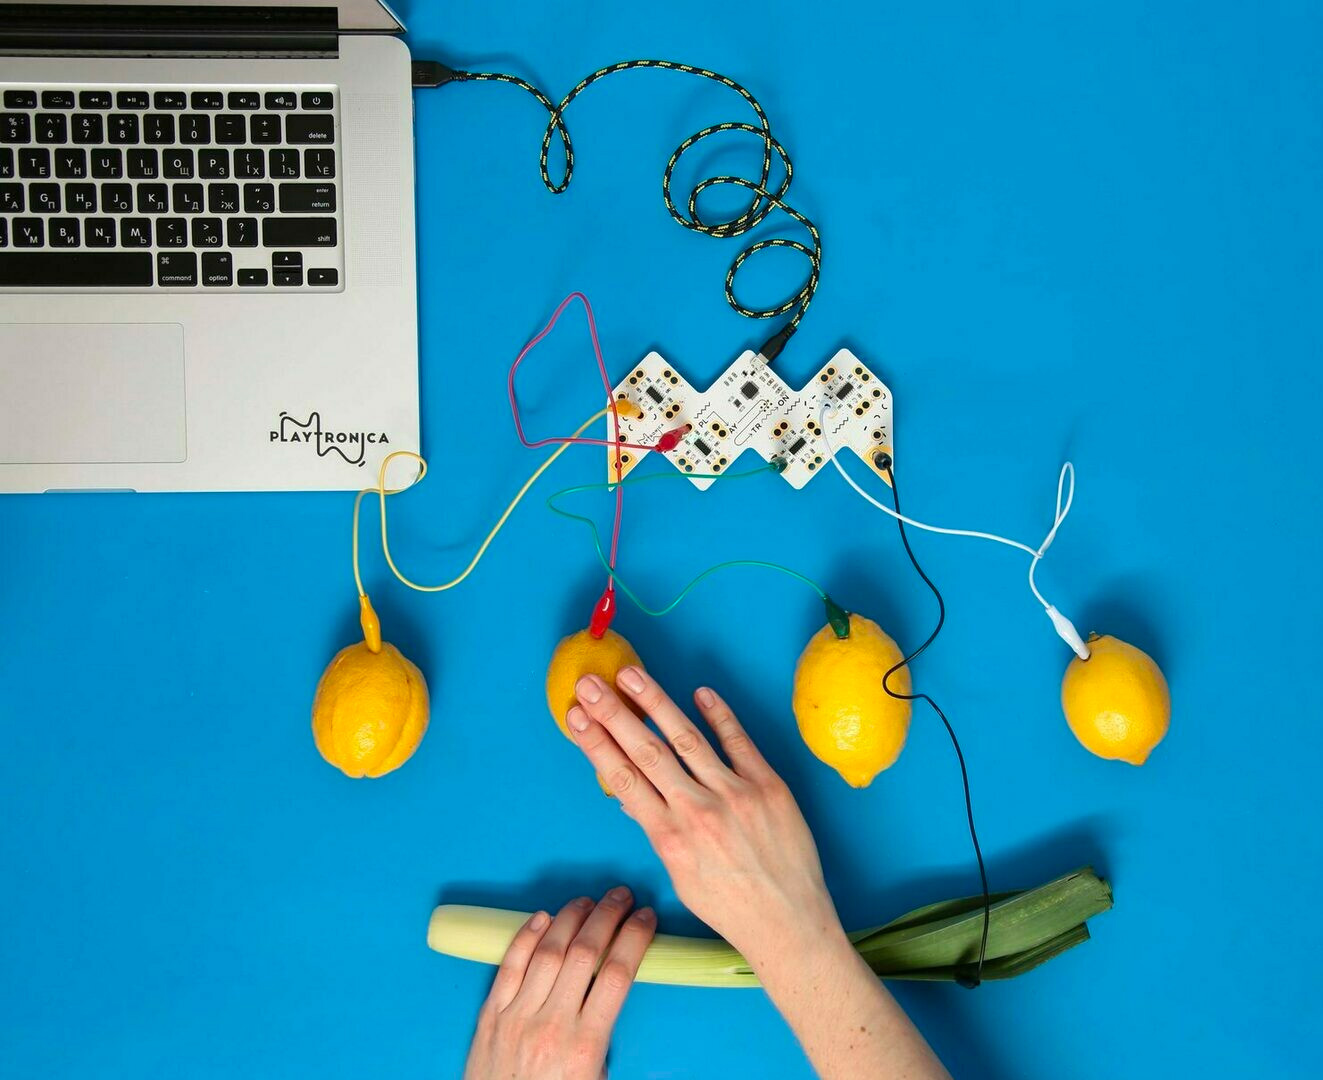 Playtronica Wants You To Make Music with Everyday Objects at werd.com